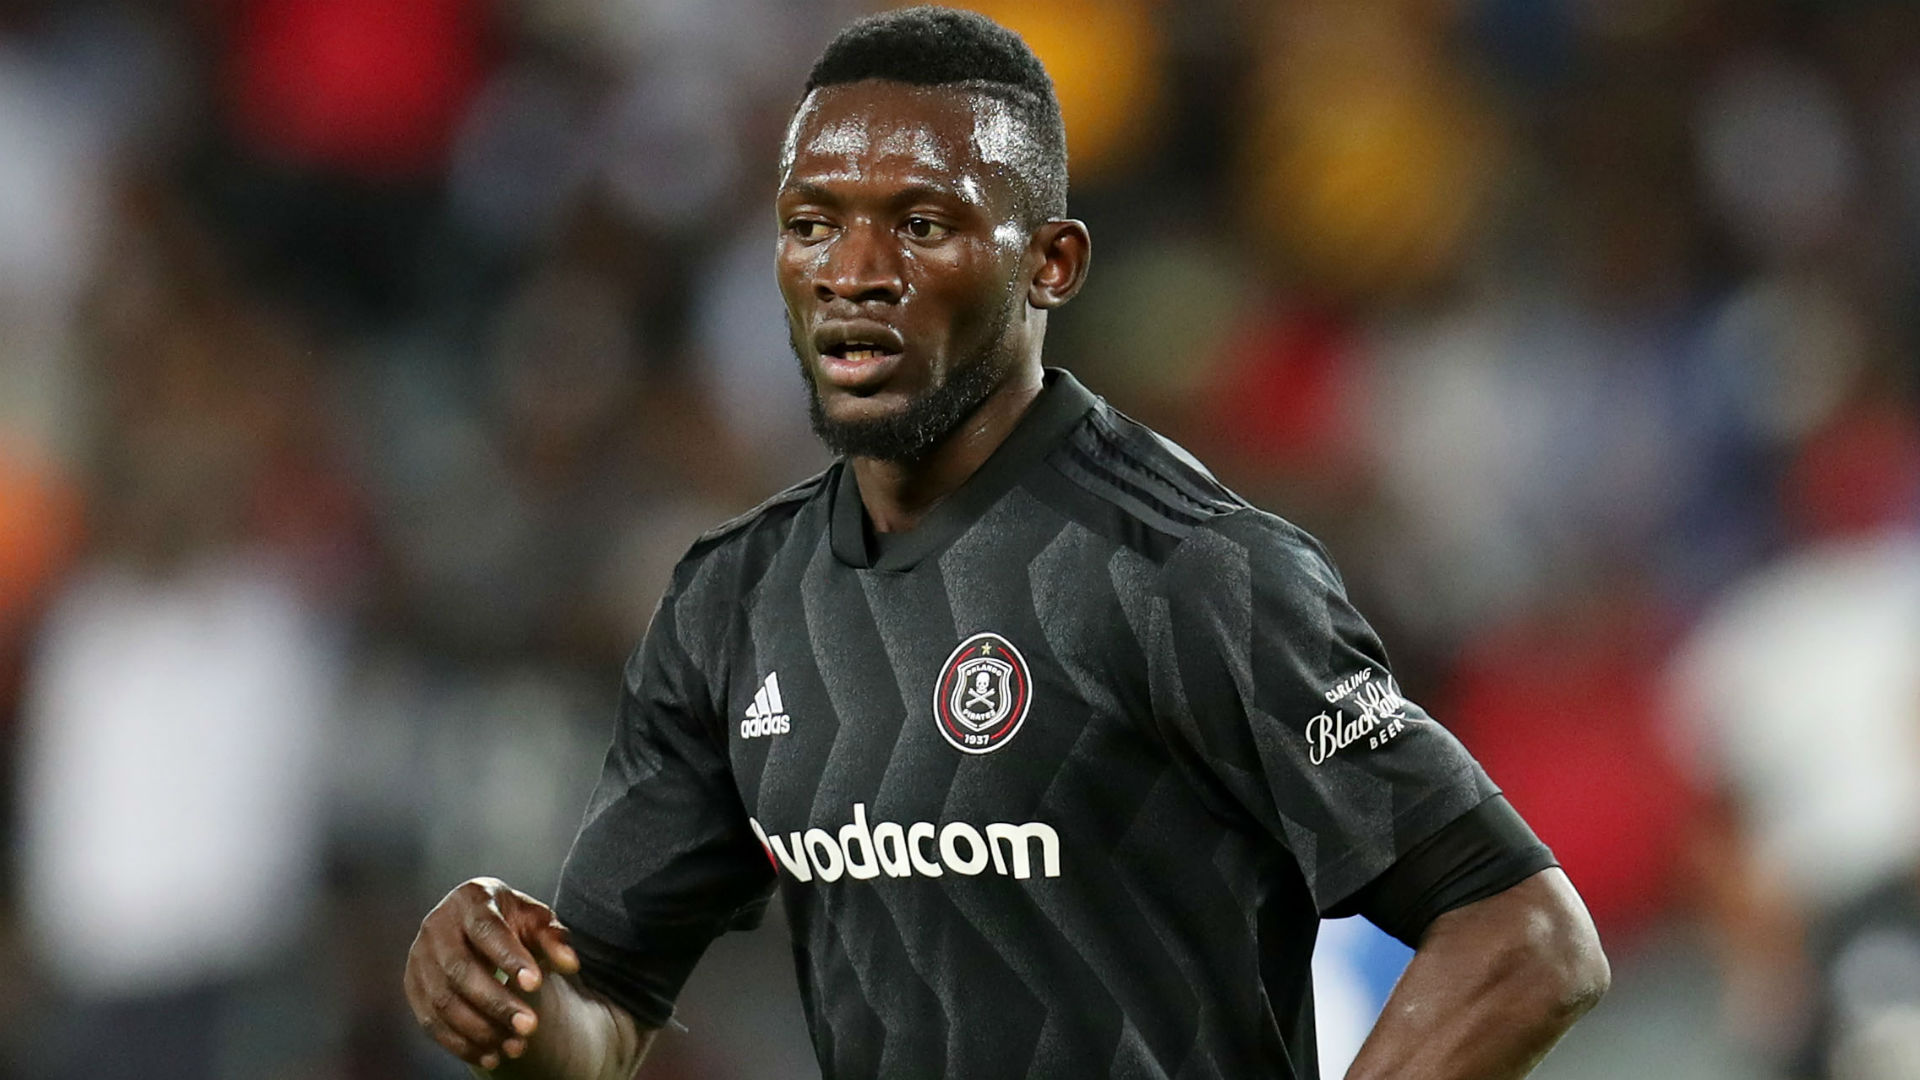 Augustine Mulenga, Orlando Pirates, September 2018